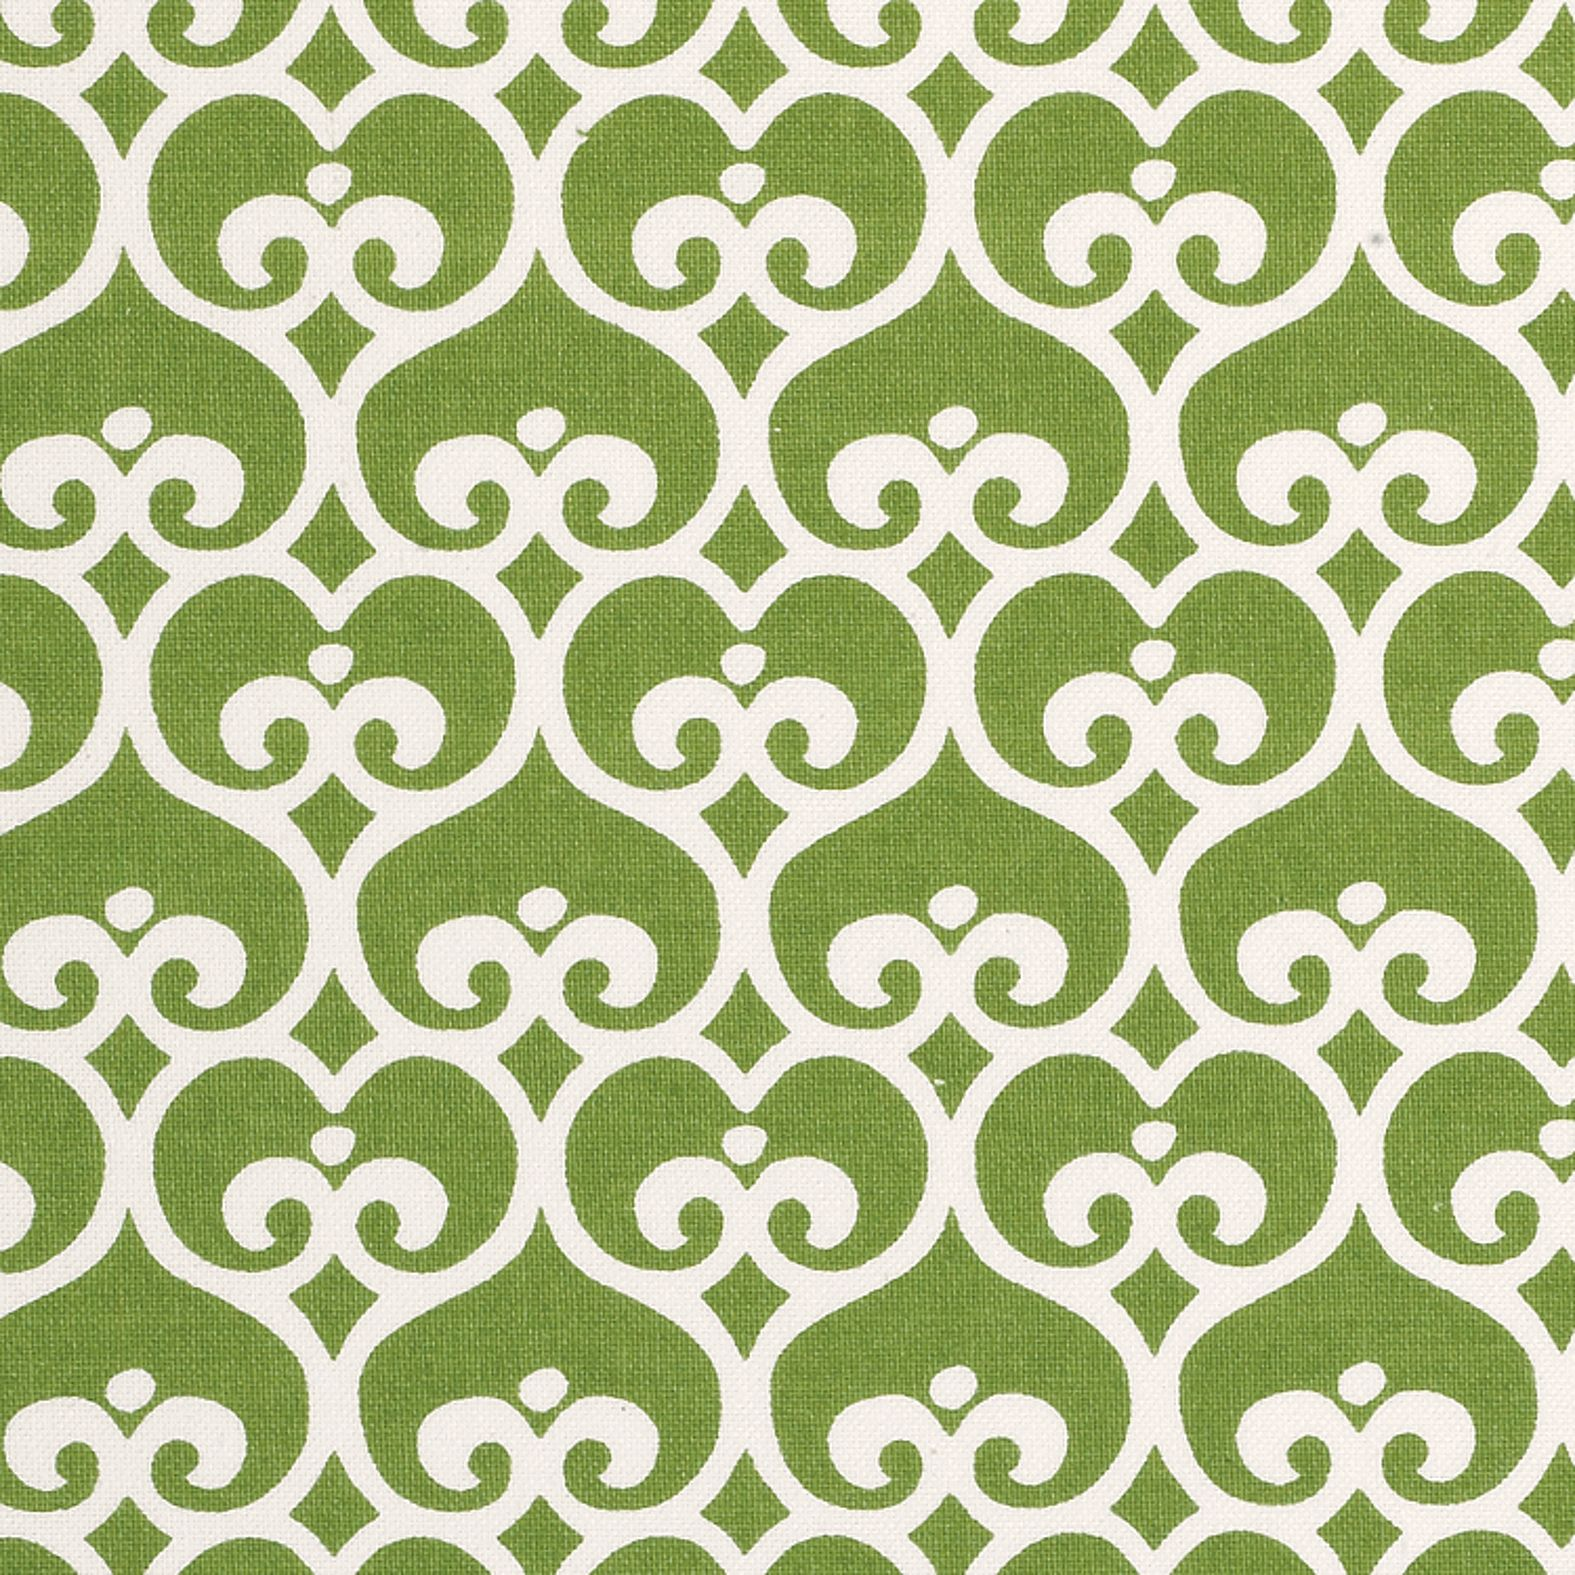 Clover Spade Fabric by the Yard